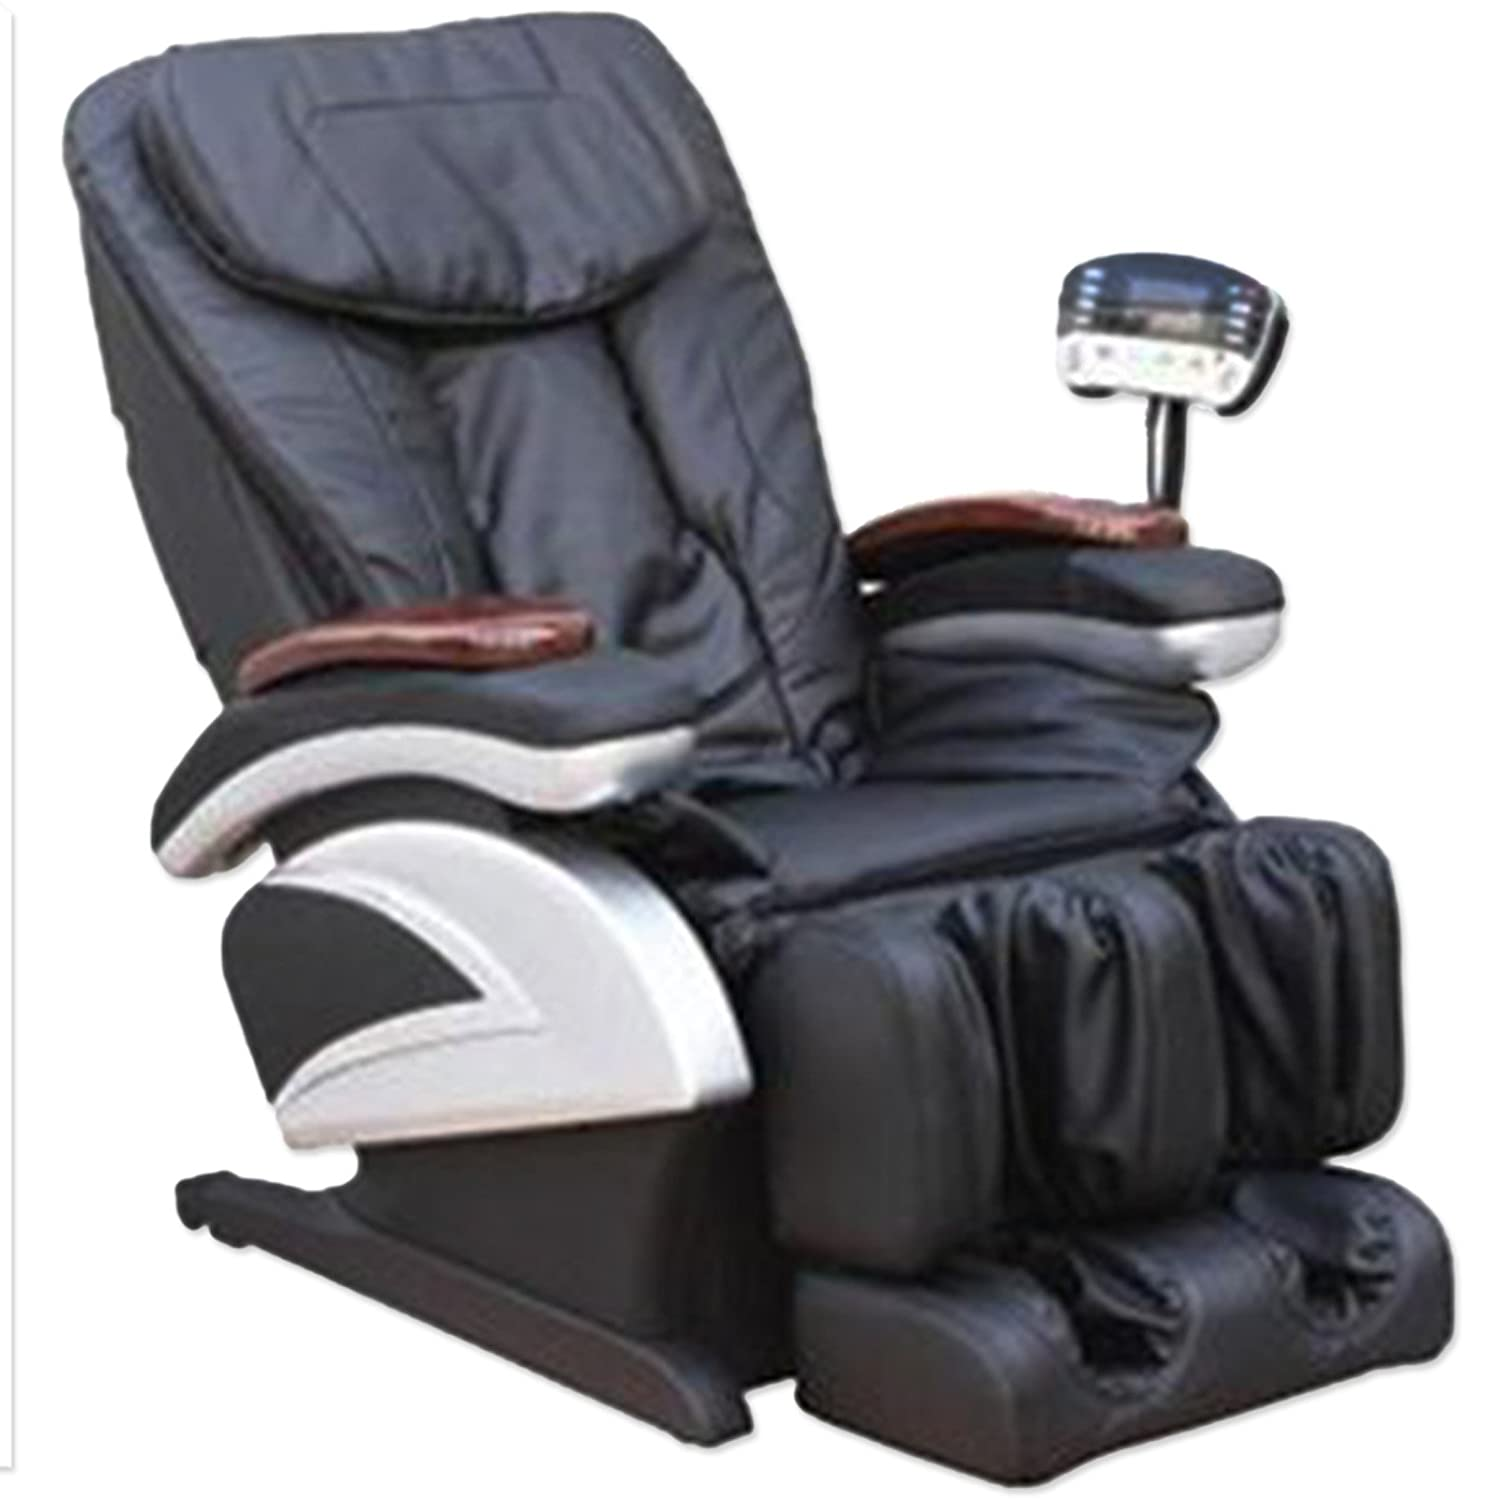 Amazon Black Full Body Shiatsu Massage Recliner Chair heater